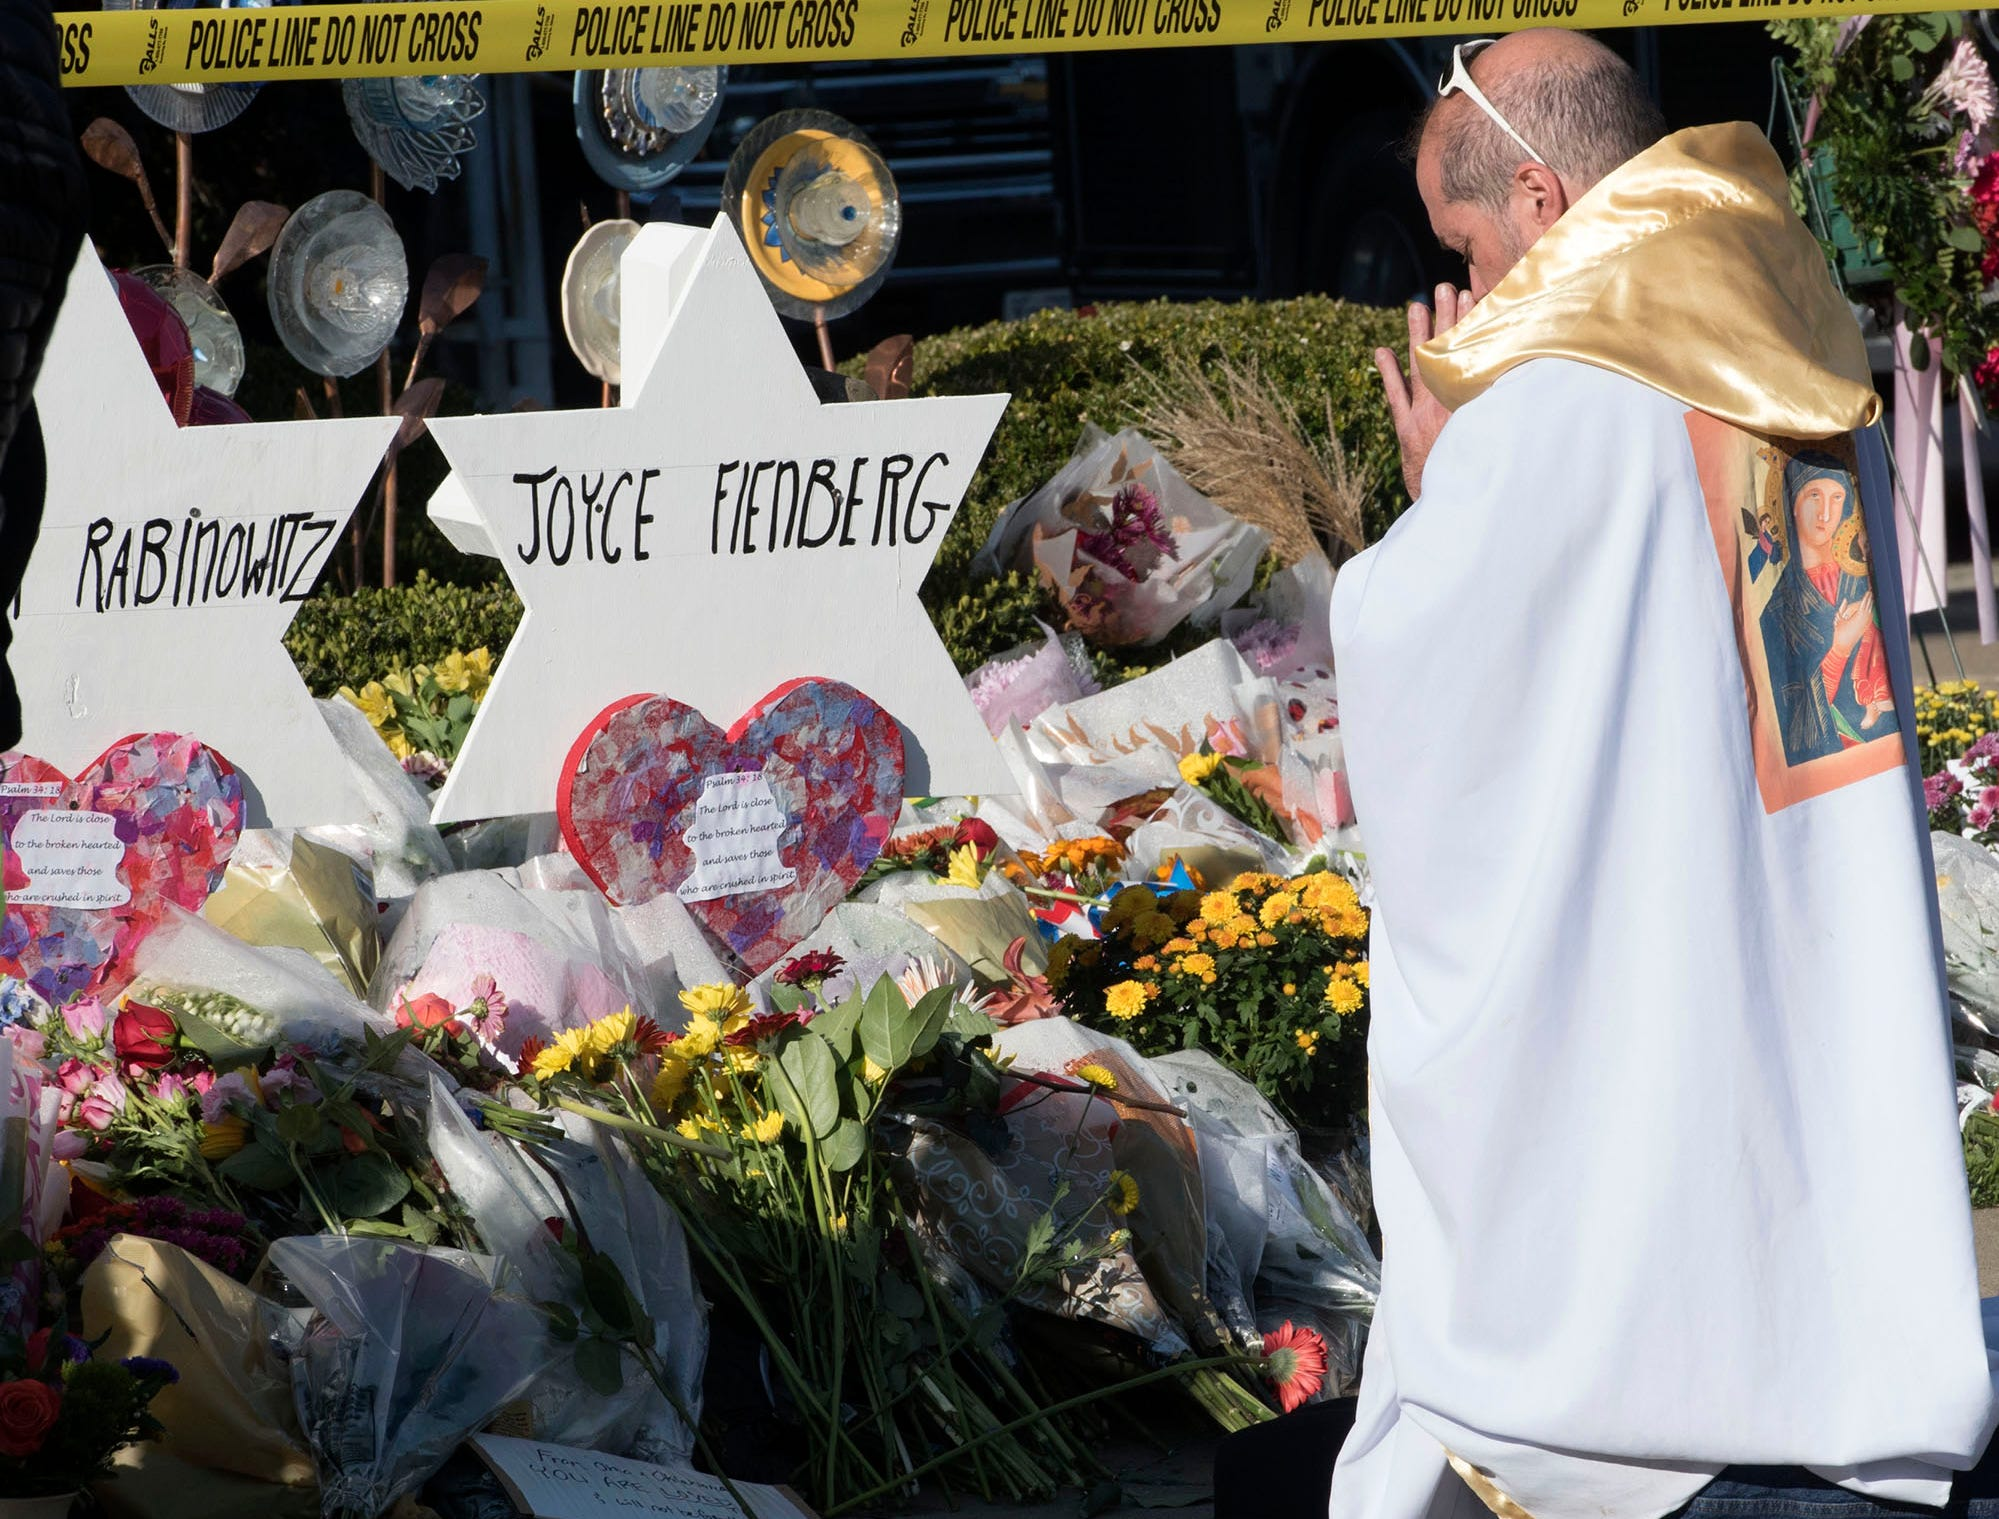 Brother Tomasio Vienditti, of St. Bernadette Catholic Church, Monroeville, Pa., prays at a memorial for victims on Tuesday, October 30, 2018. A gunman entered the Tree of Life Congregation Synagogue in the Squirrel Hill neighborhood of Pittsburgh and opened fire on the congregants and engaged police, Saturday morning, according to officials. (Markell DeLoatch, Public Opinion/via USA Today Network)